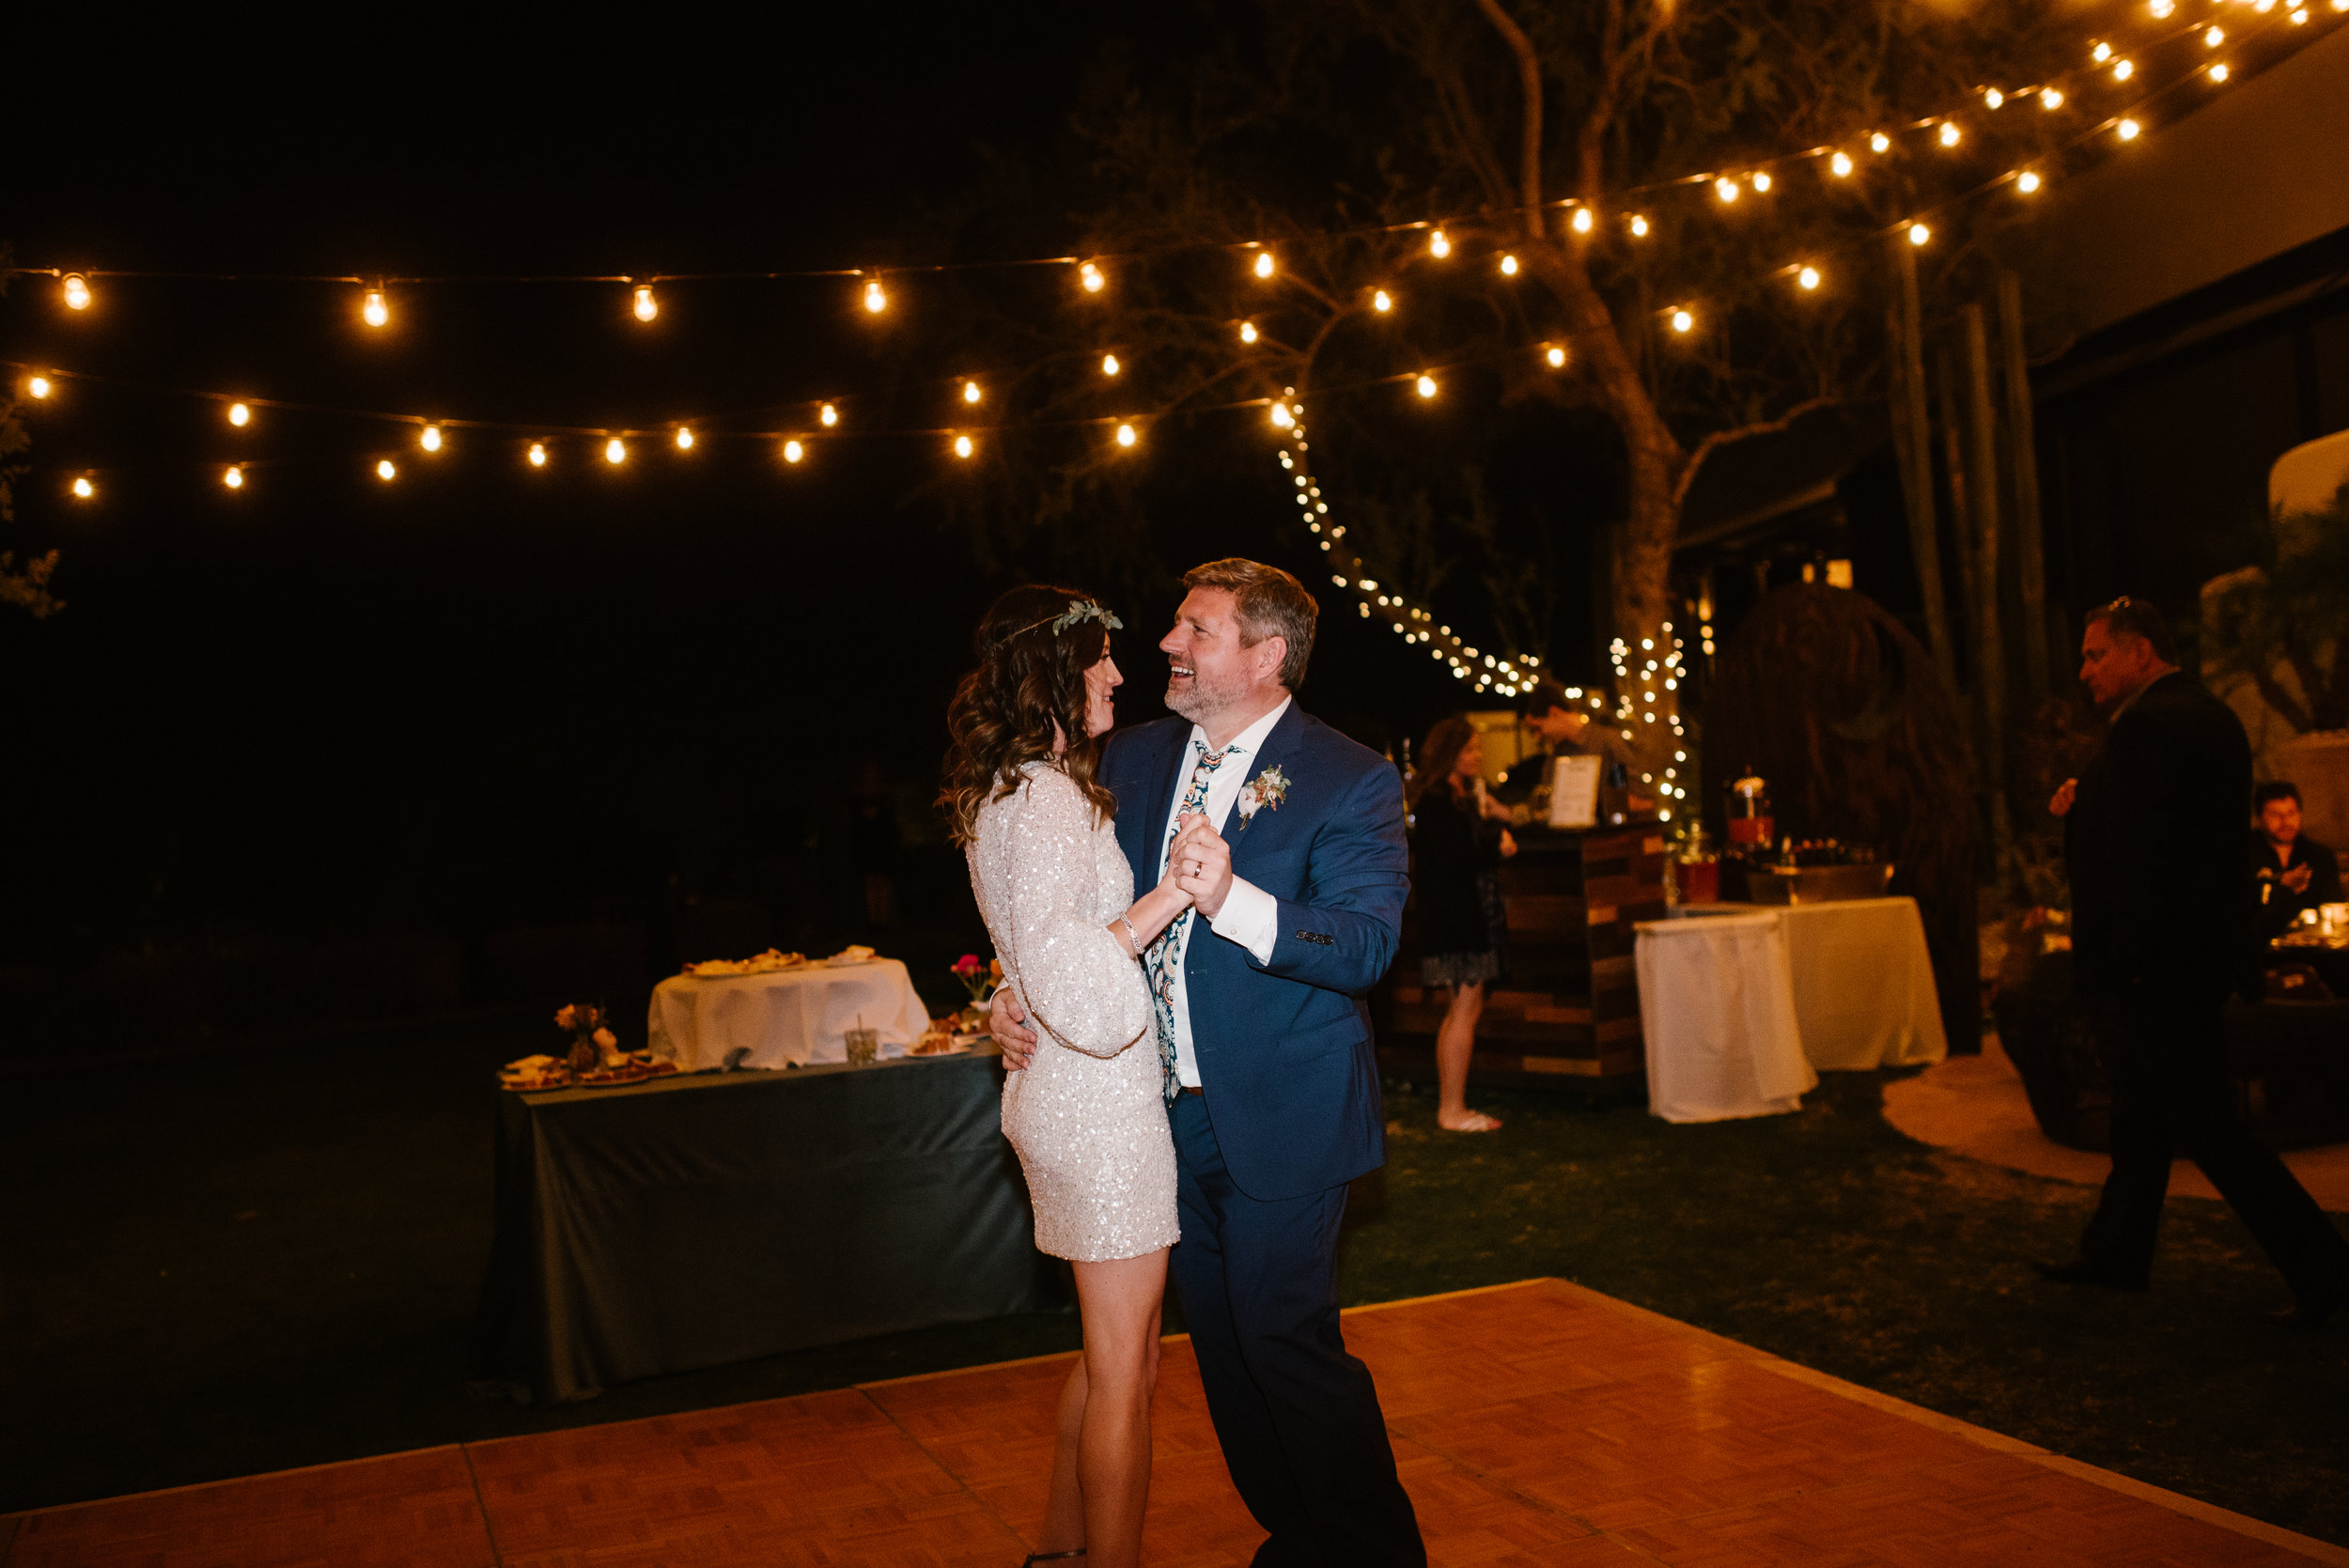 ArizonaWeddingPhotographer_Schad_1022.jpg